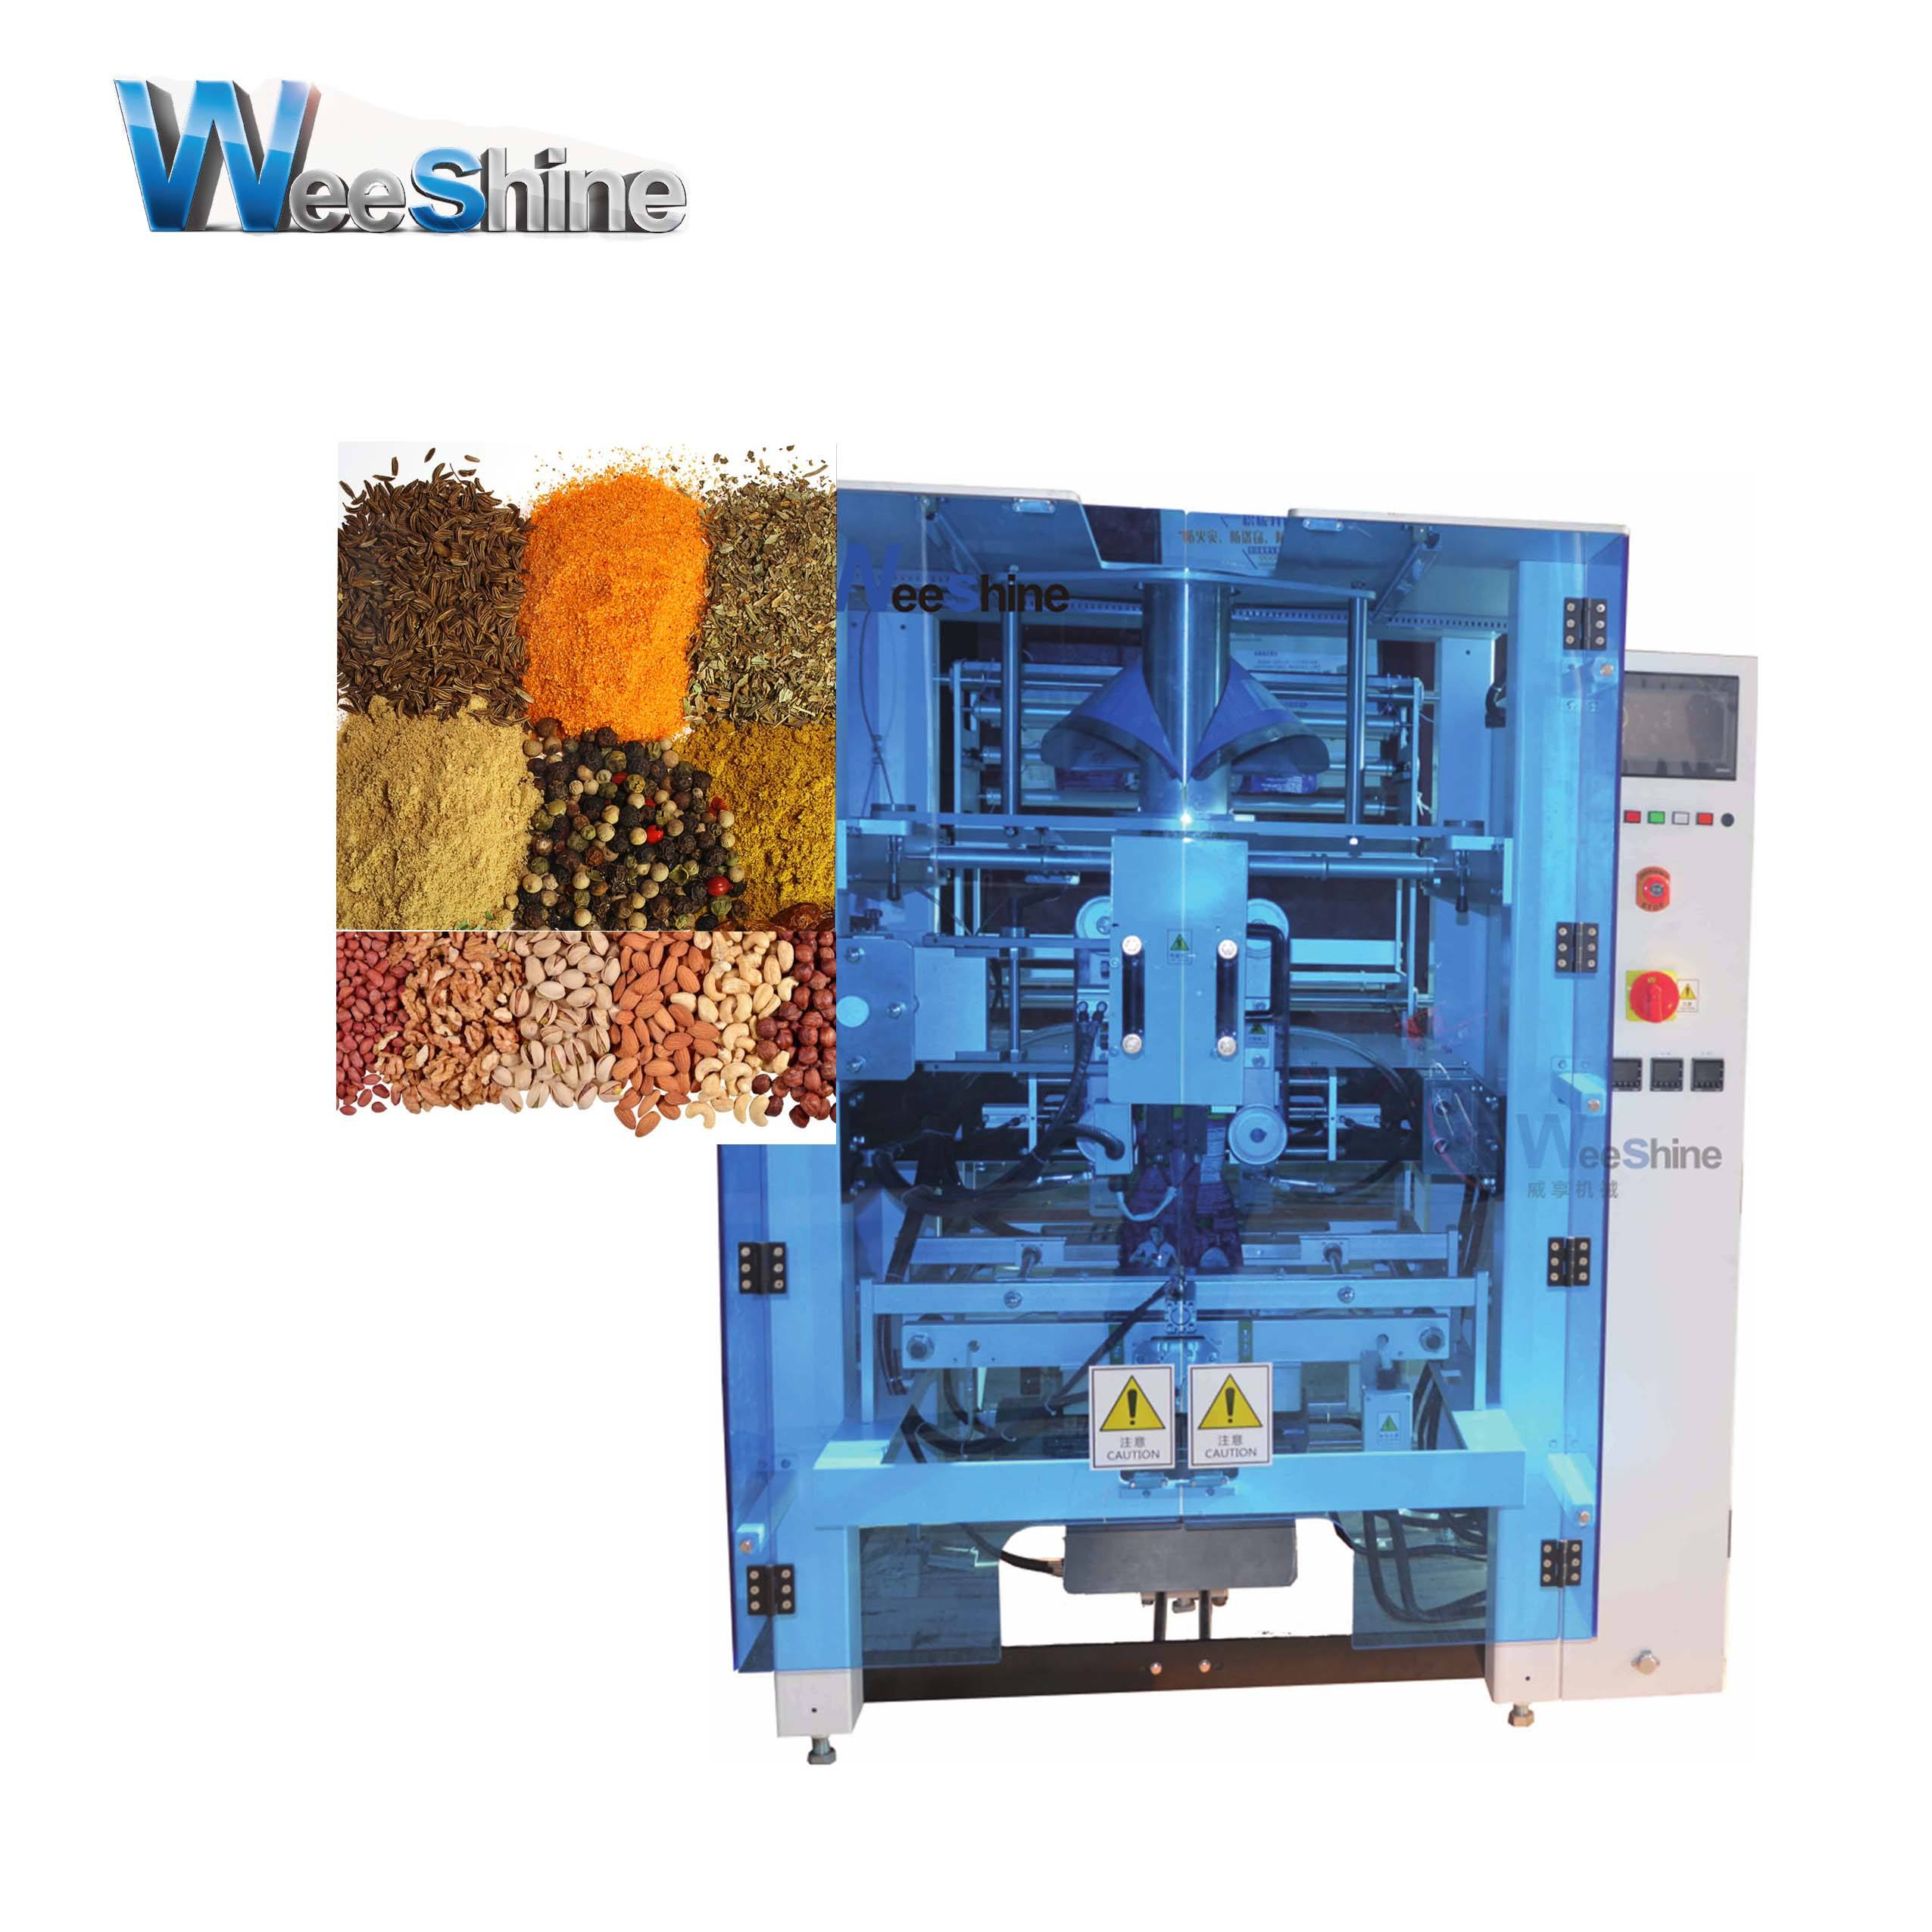 Factory Price Pillow Gusset Quadro Pouch Plastic Bag Vertical Packaging Machine For Snacks Nuts Spices